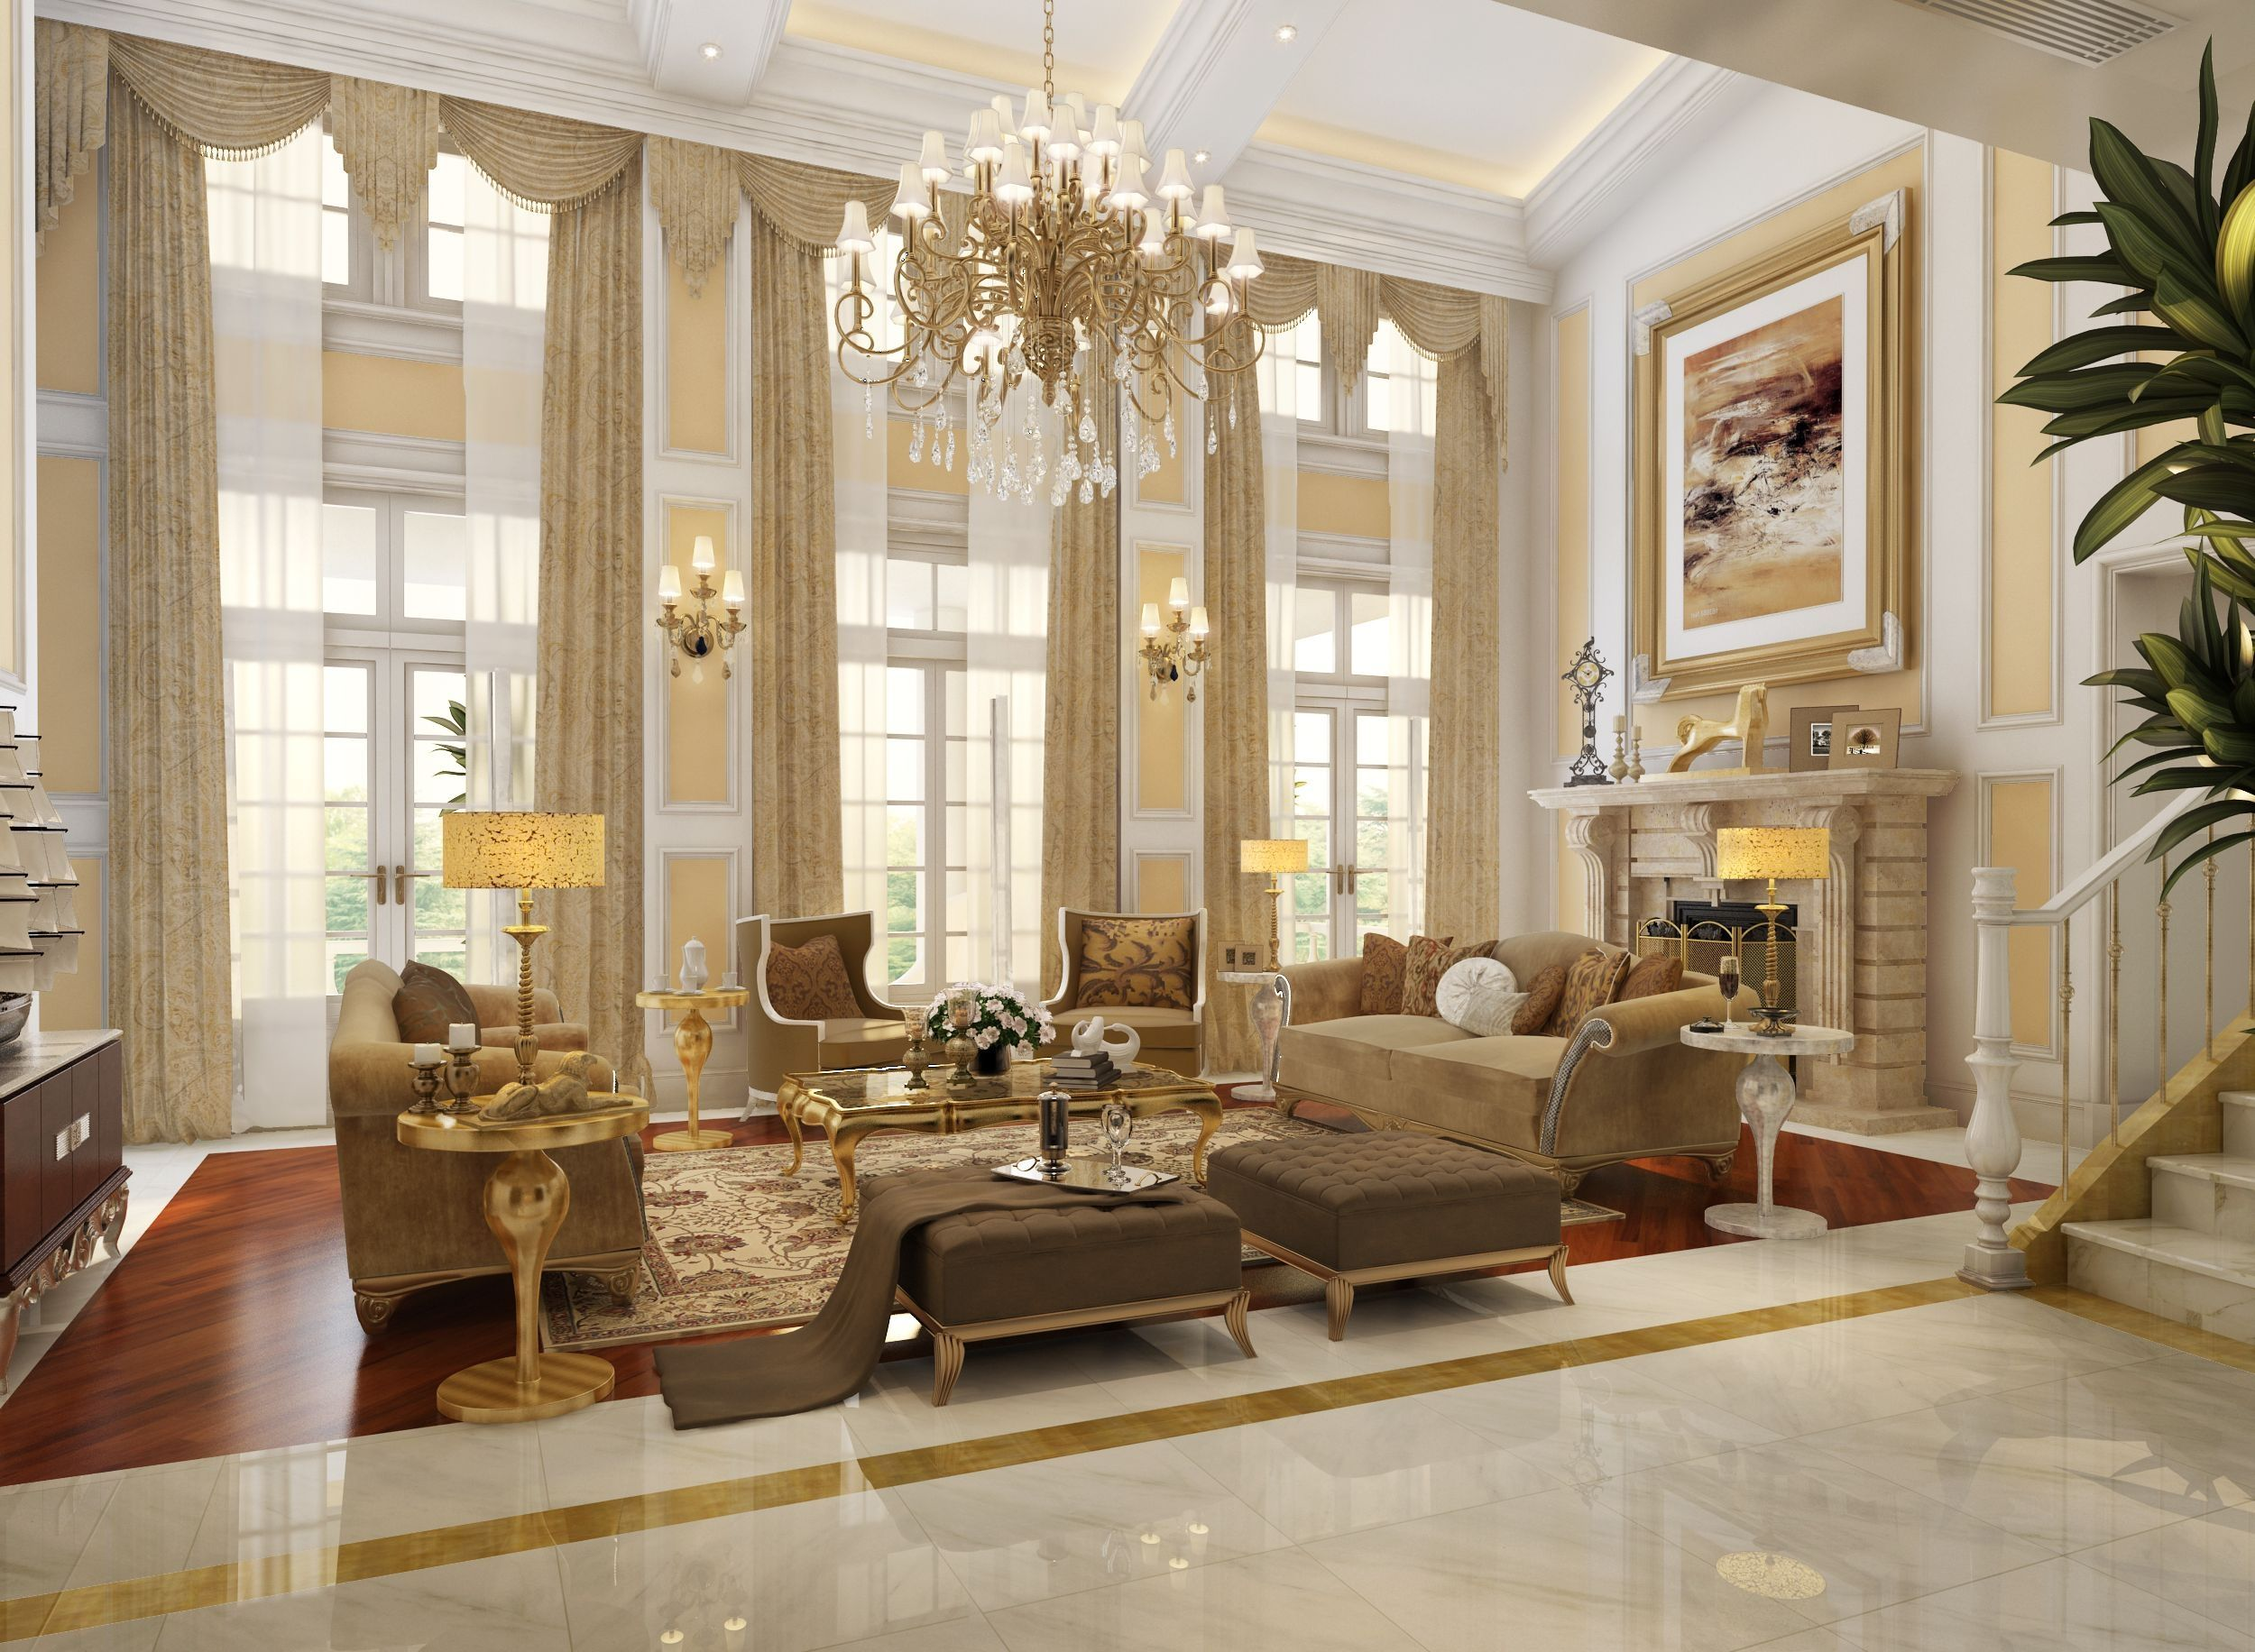 24 Luxurious Interior Design Inspirations For Your New Home with Victorian  Luxury Style